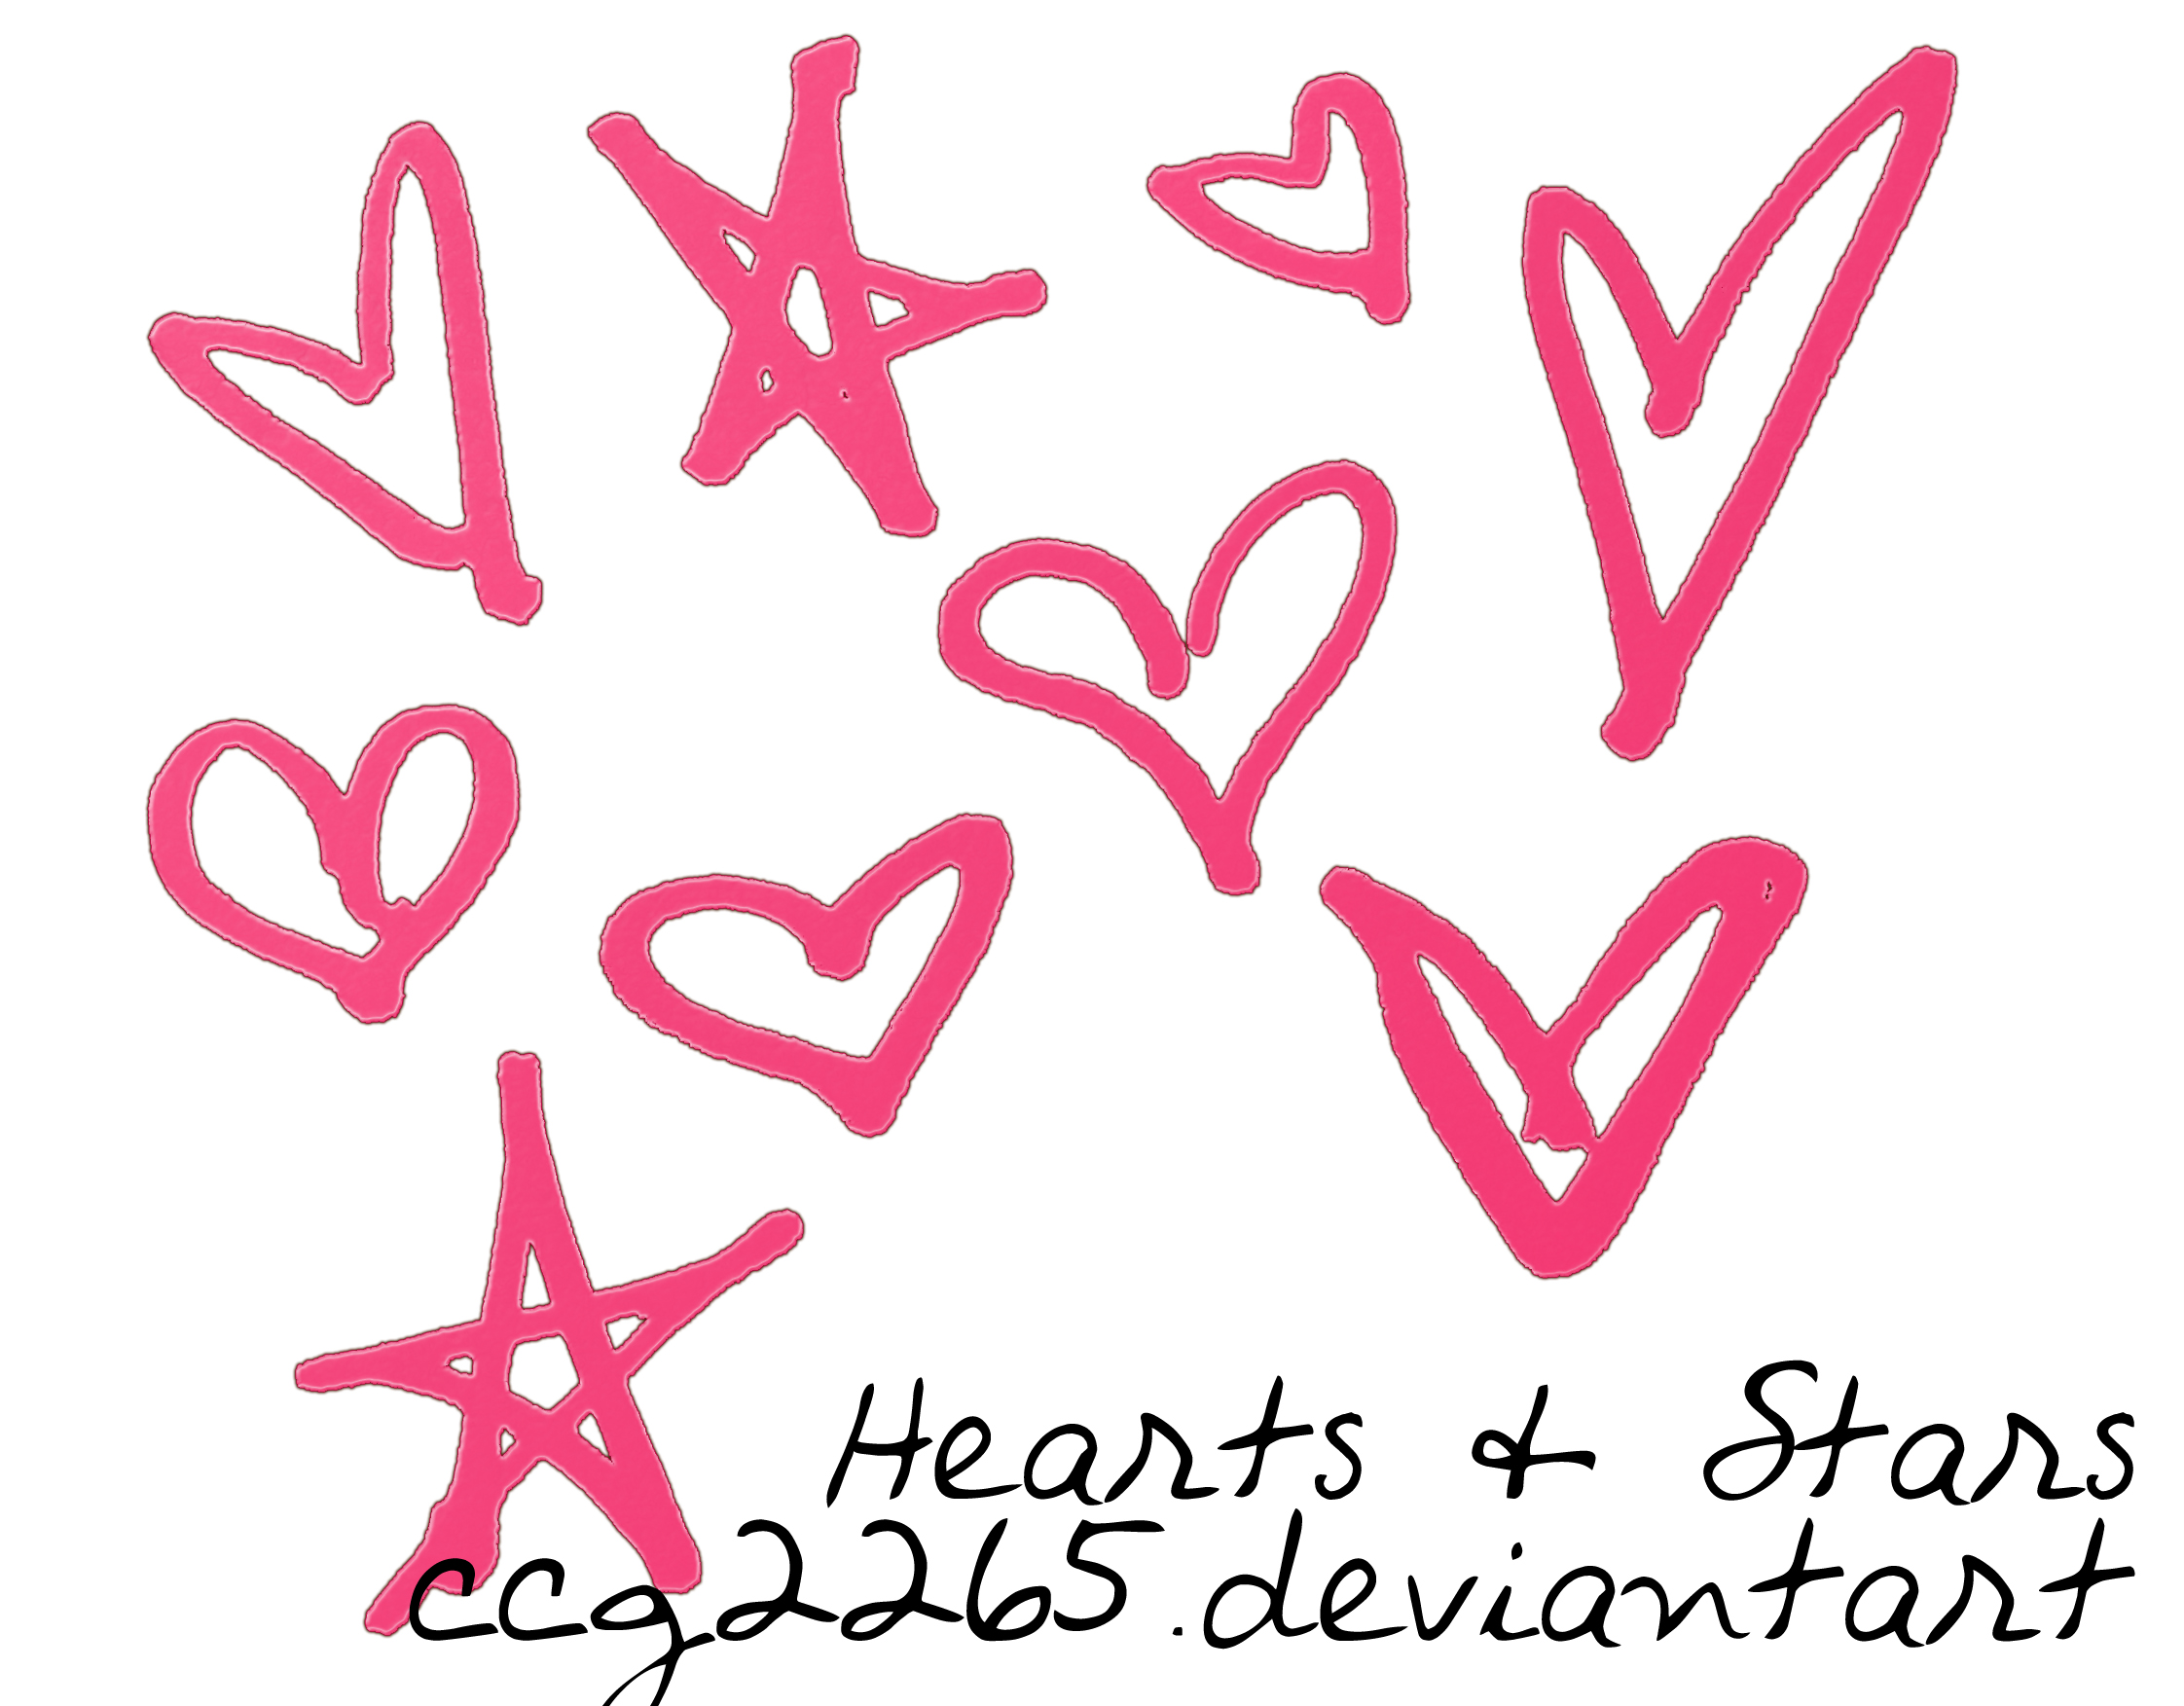 Hearts and Stars by ccg2265 on DeviantArt